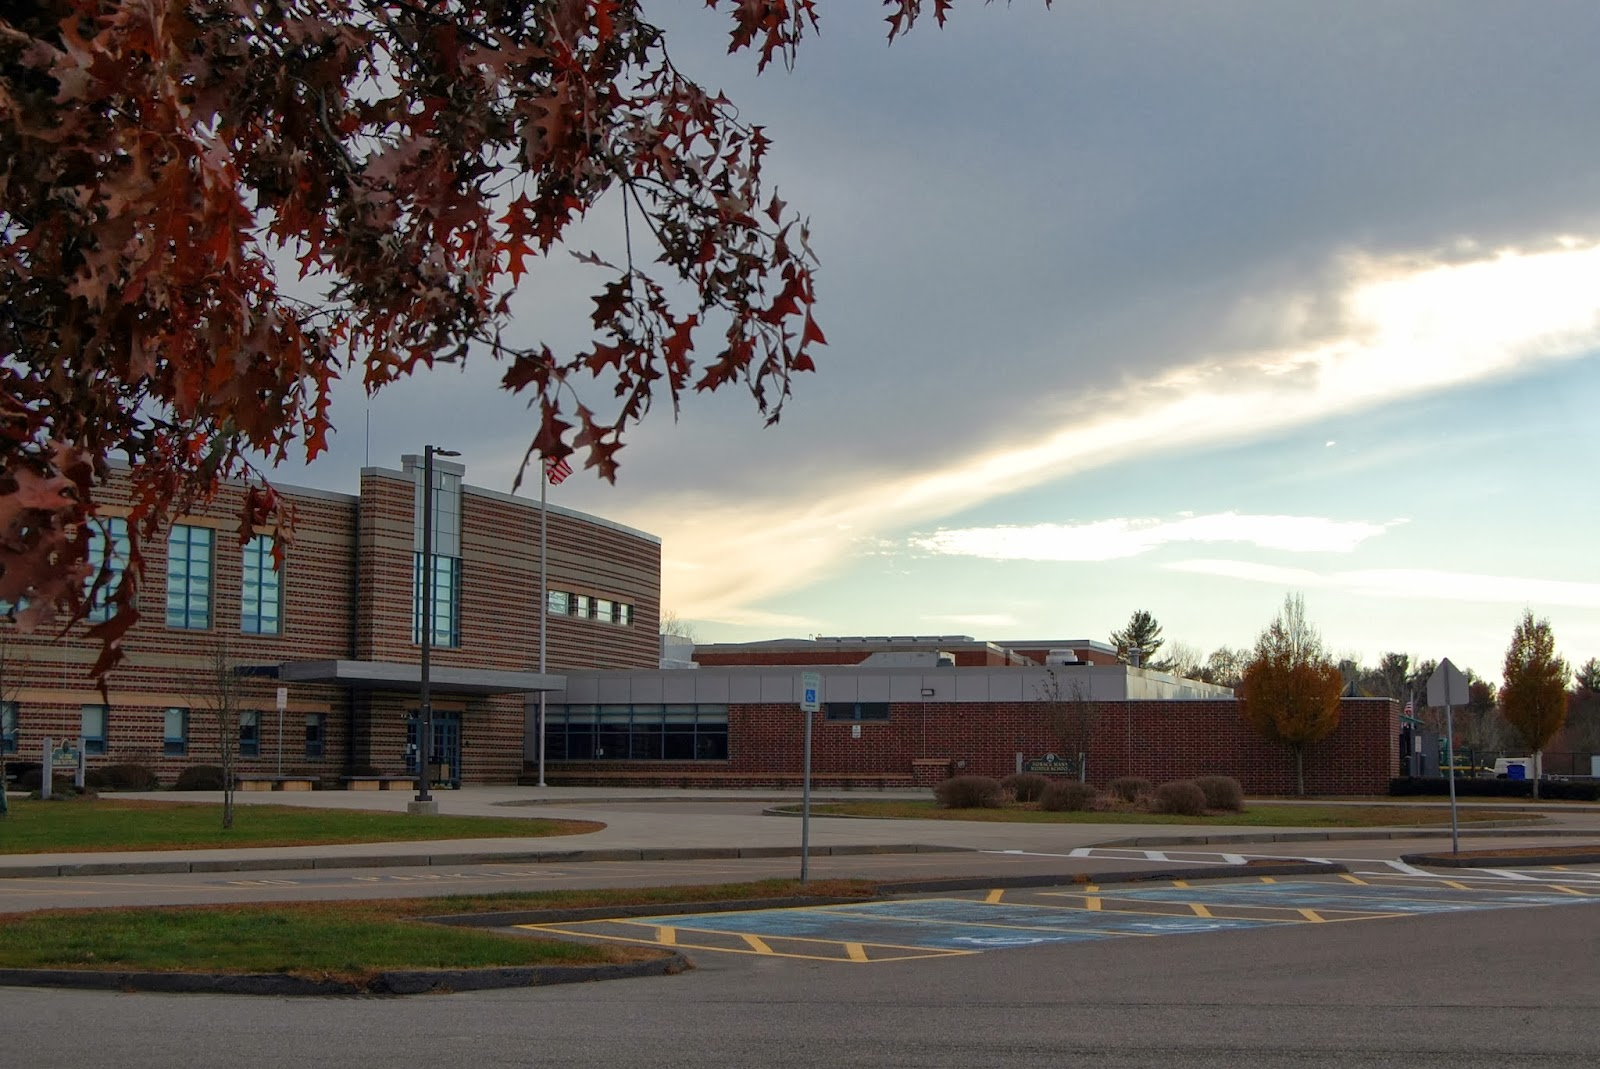 Oak St/Horace Mann school complex